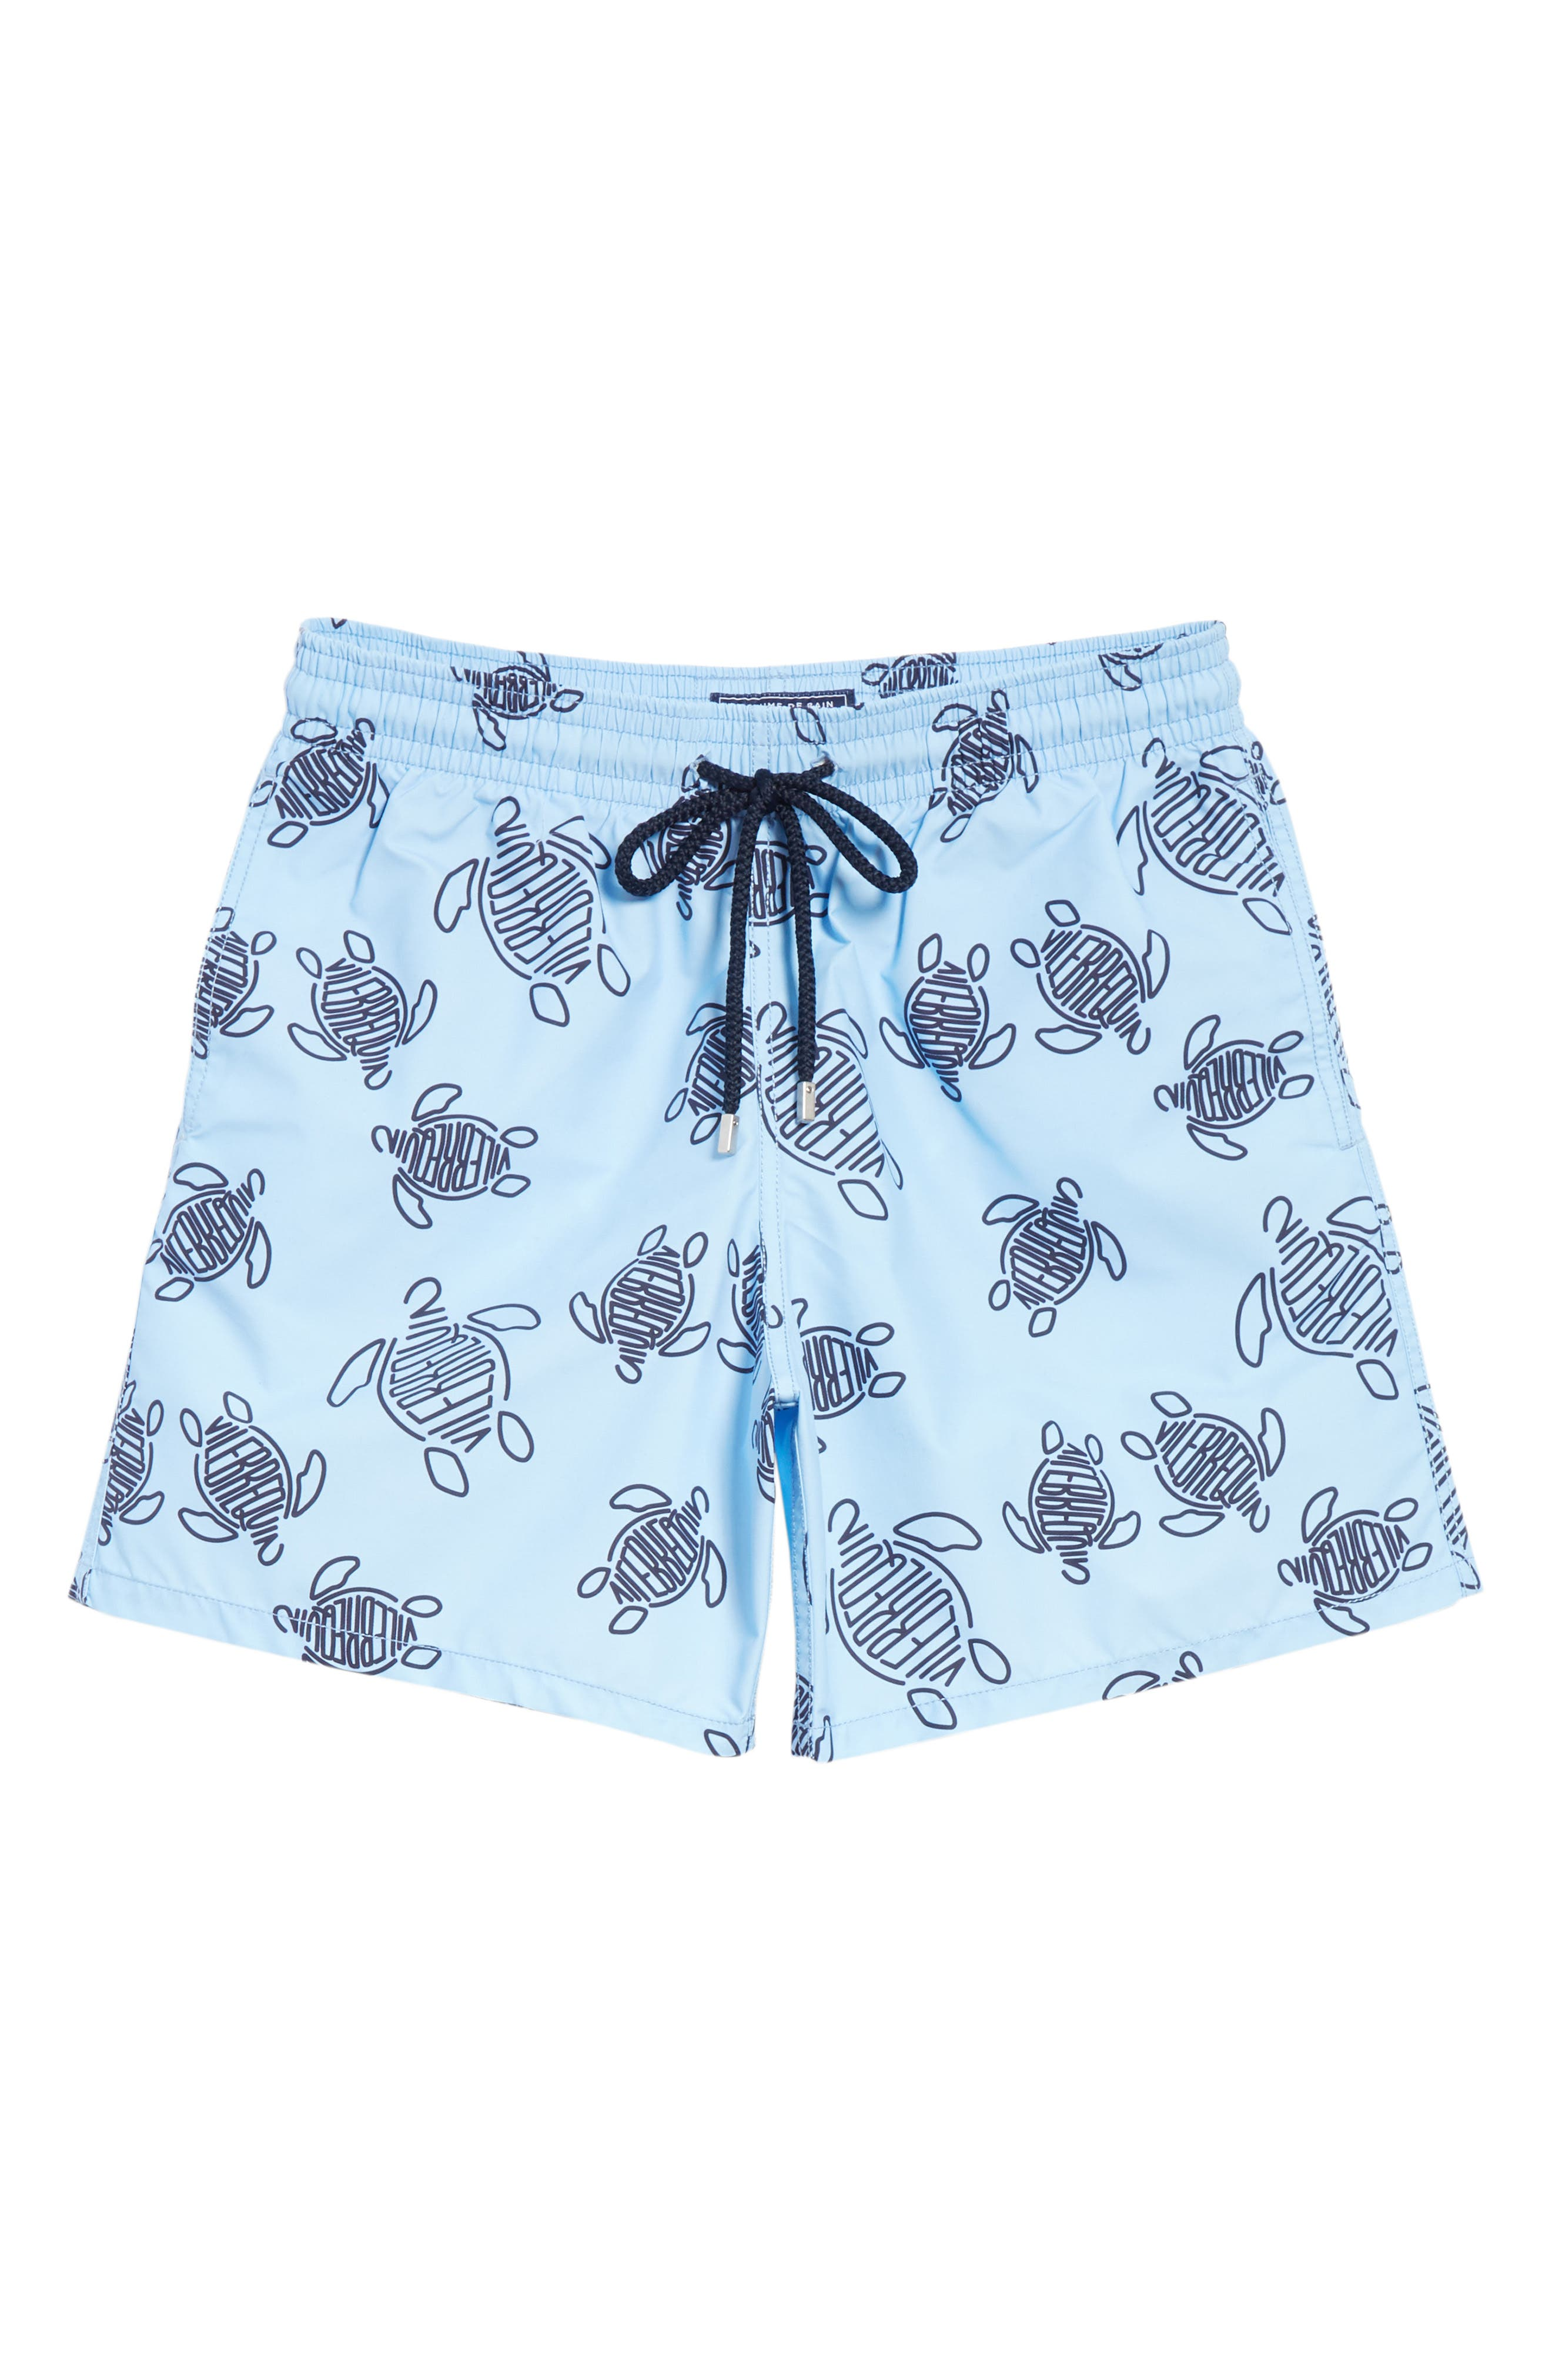 New Vilebrequin Turtle Print Swim Trunks,                             Alternate thumbnail 6, color,                             450